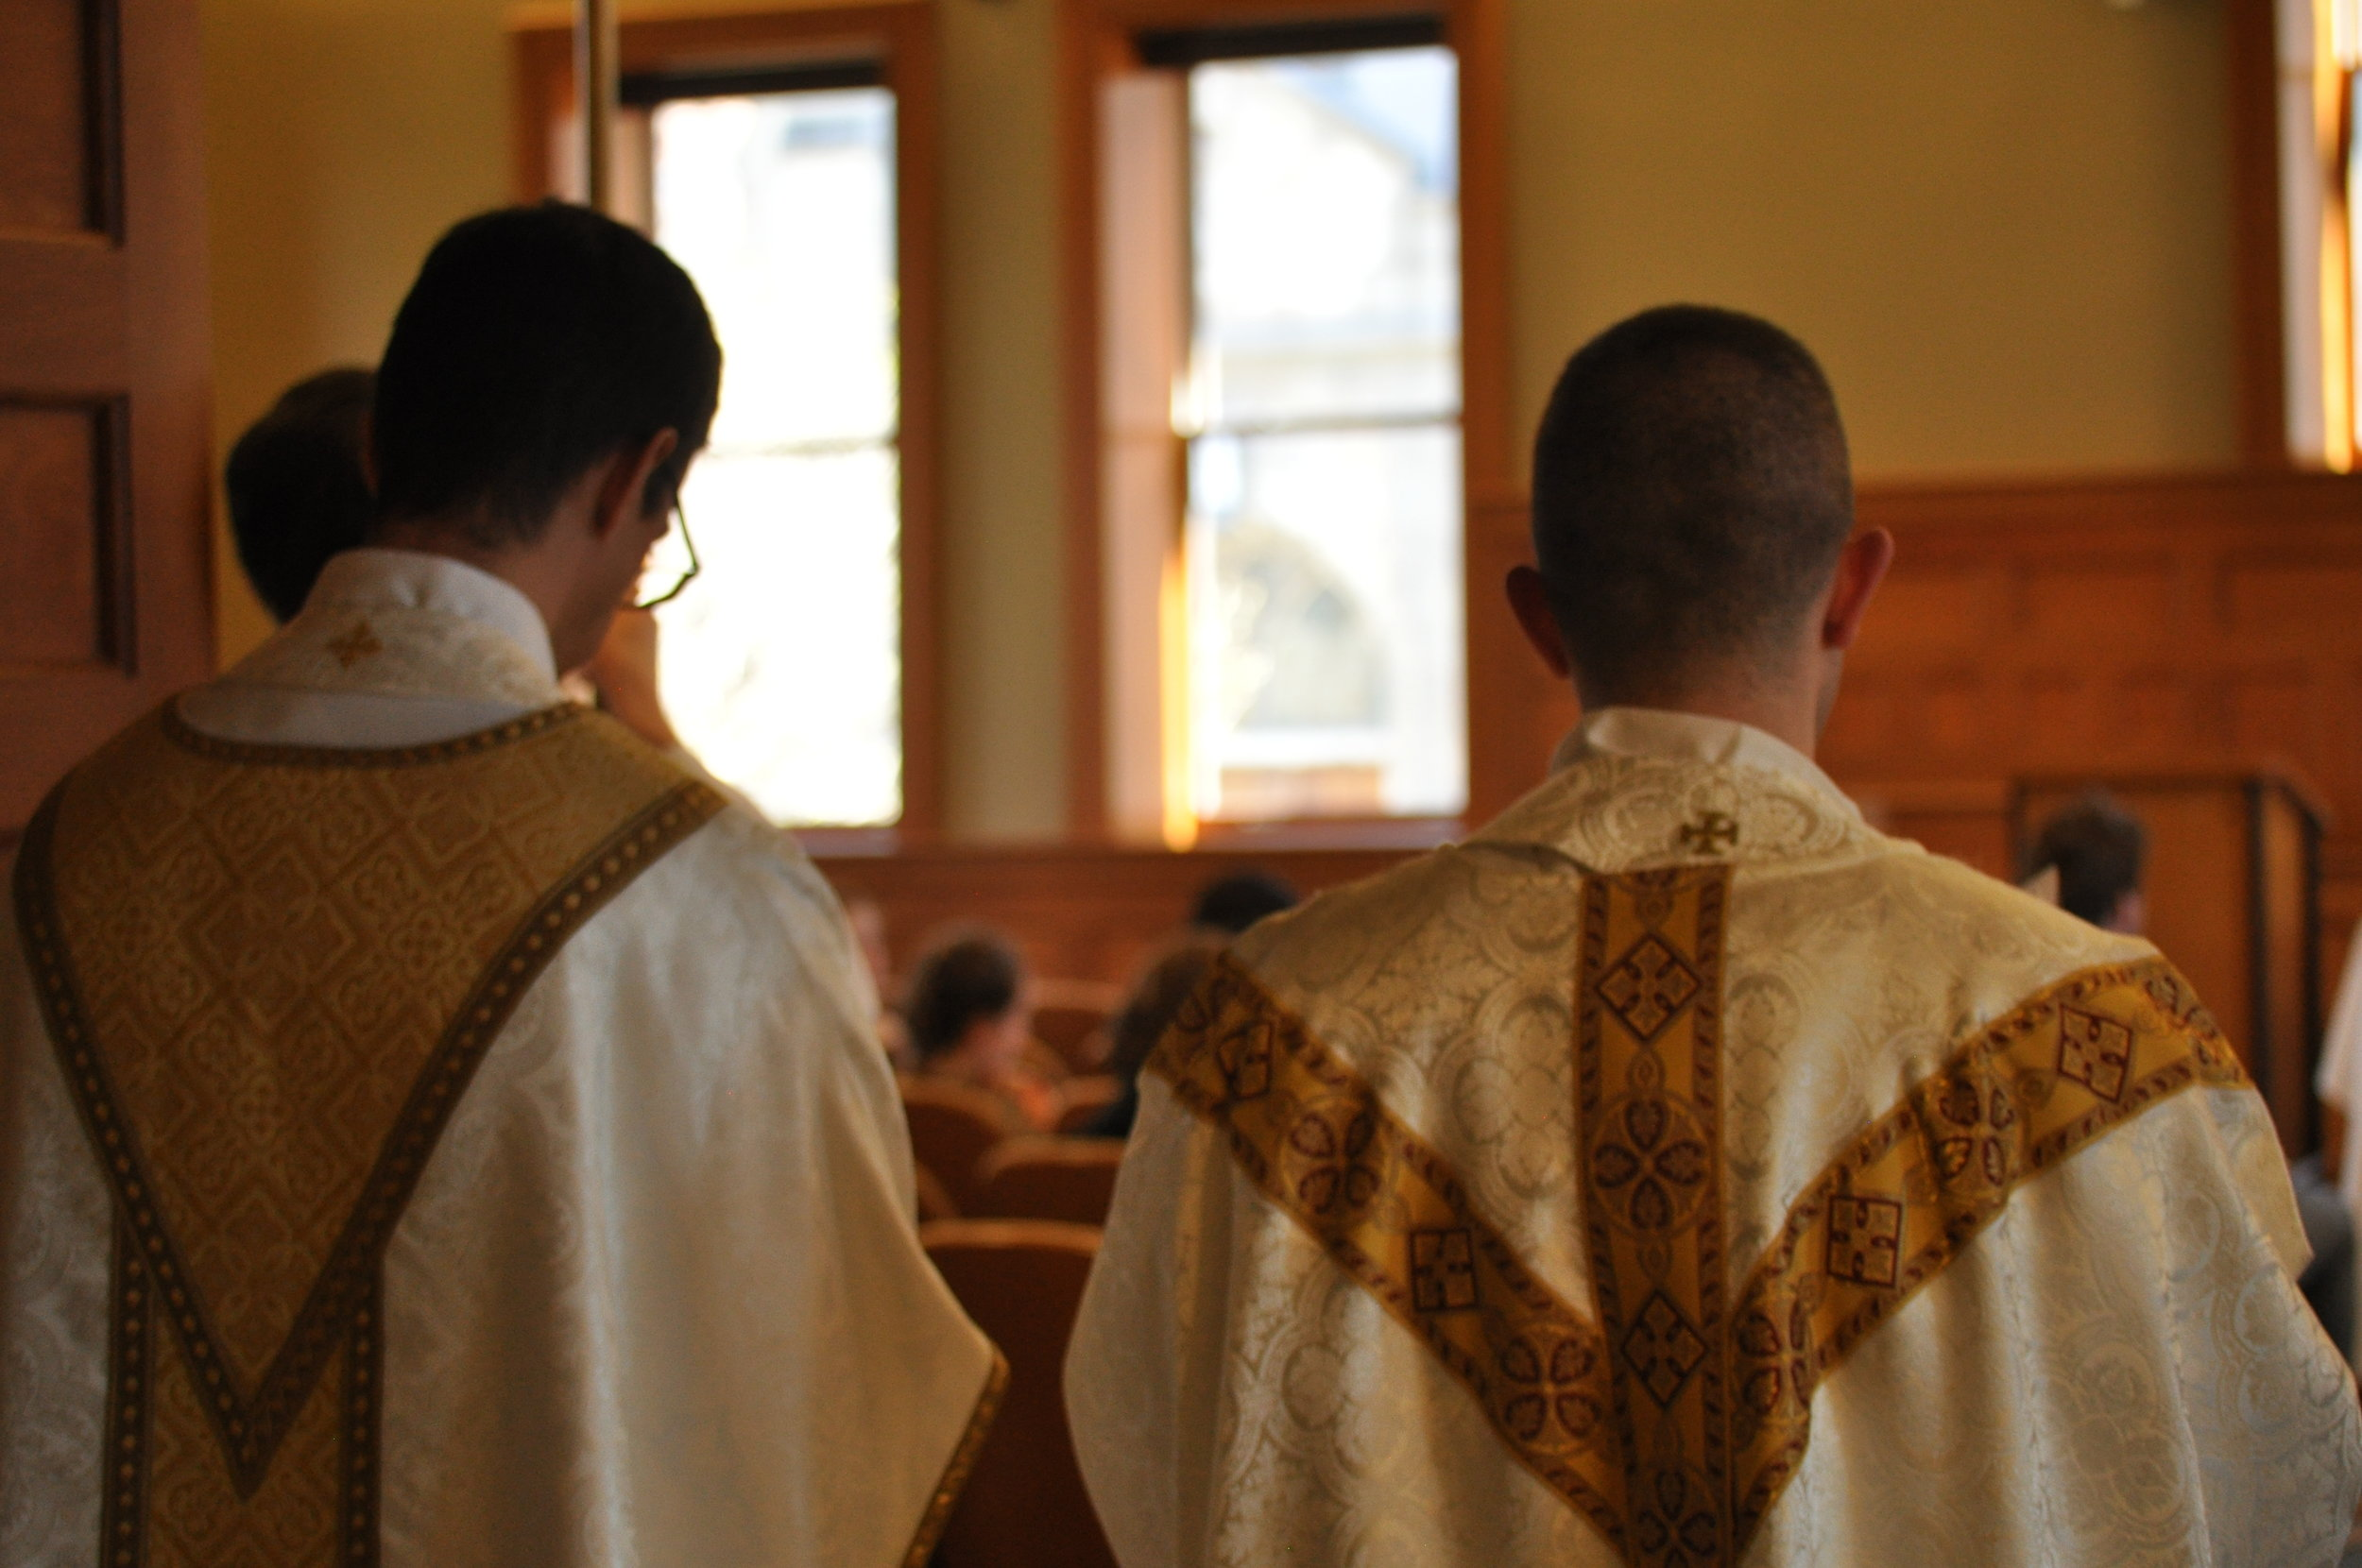 Fr. Kyle Kilpatrick and Fr. Nick Monco prepare for Mass.